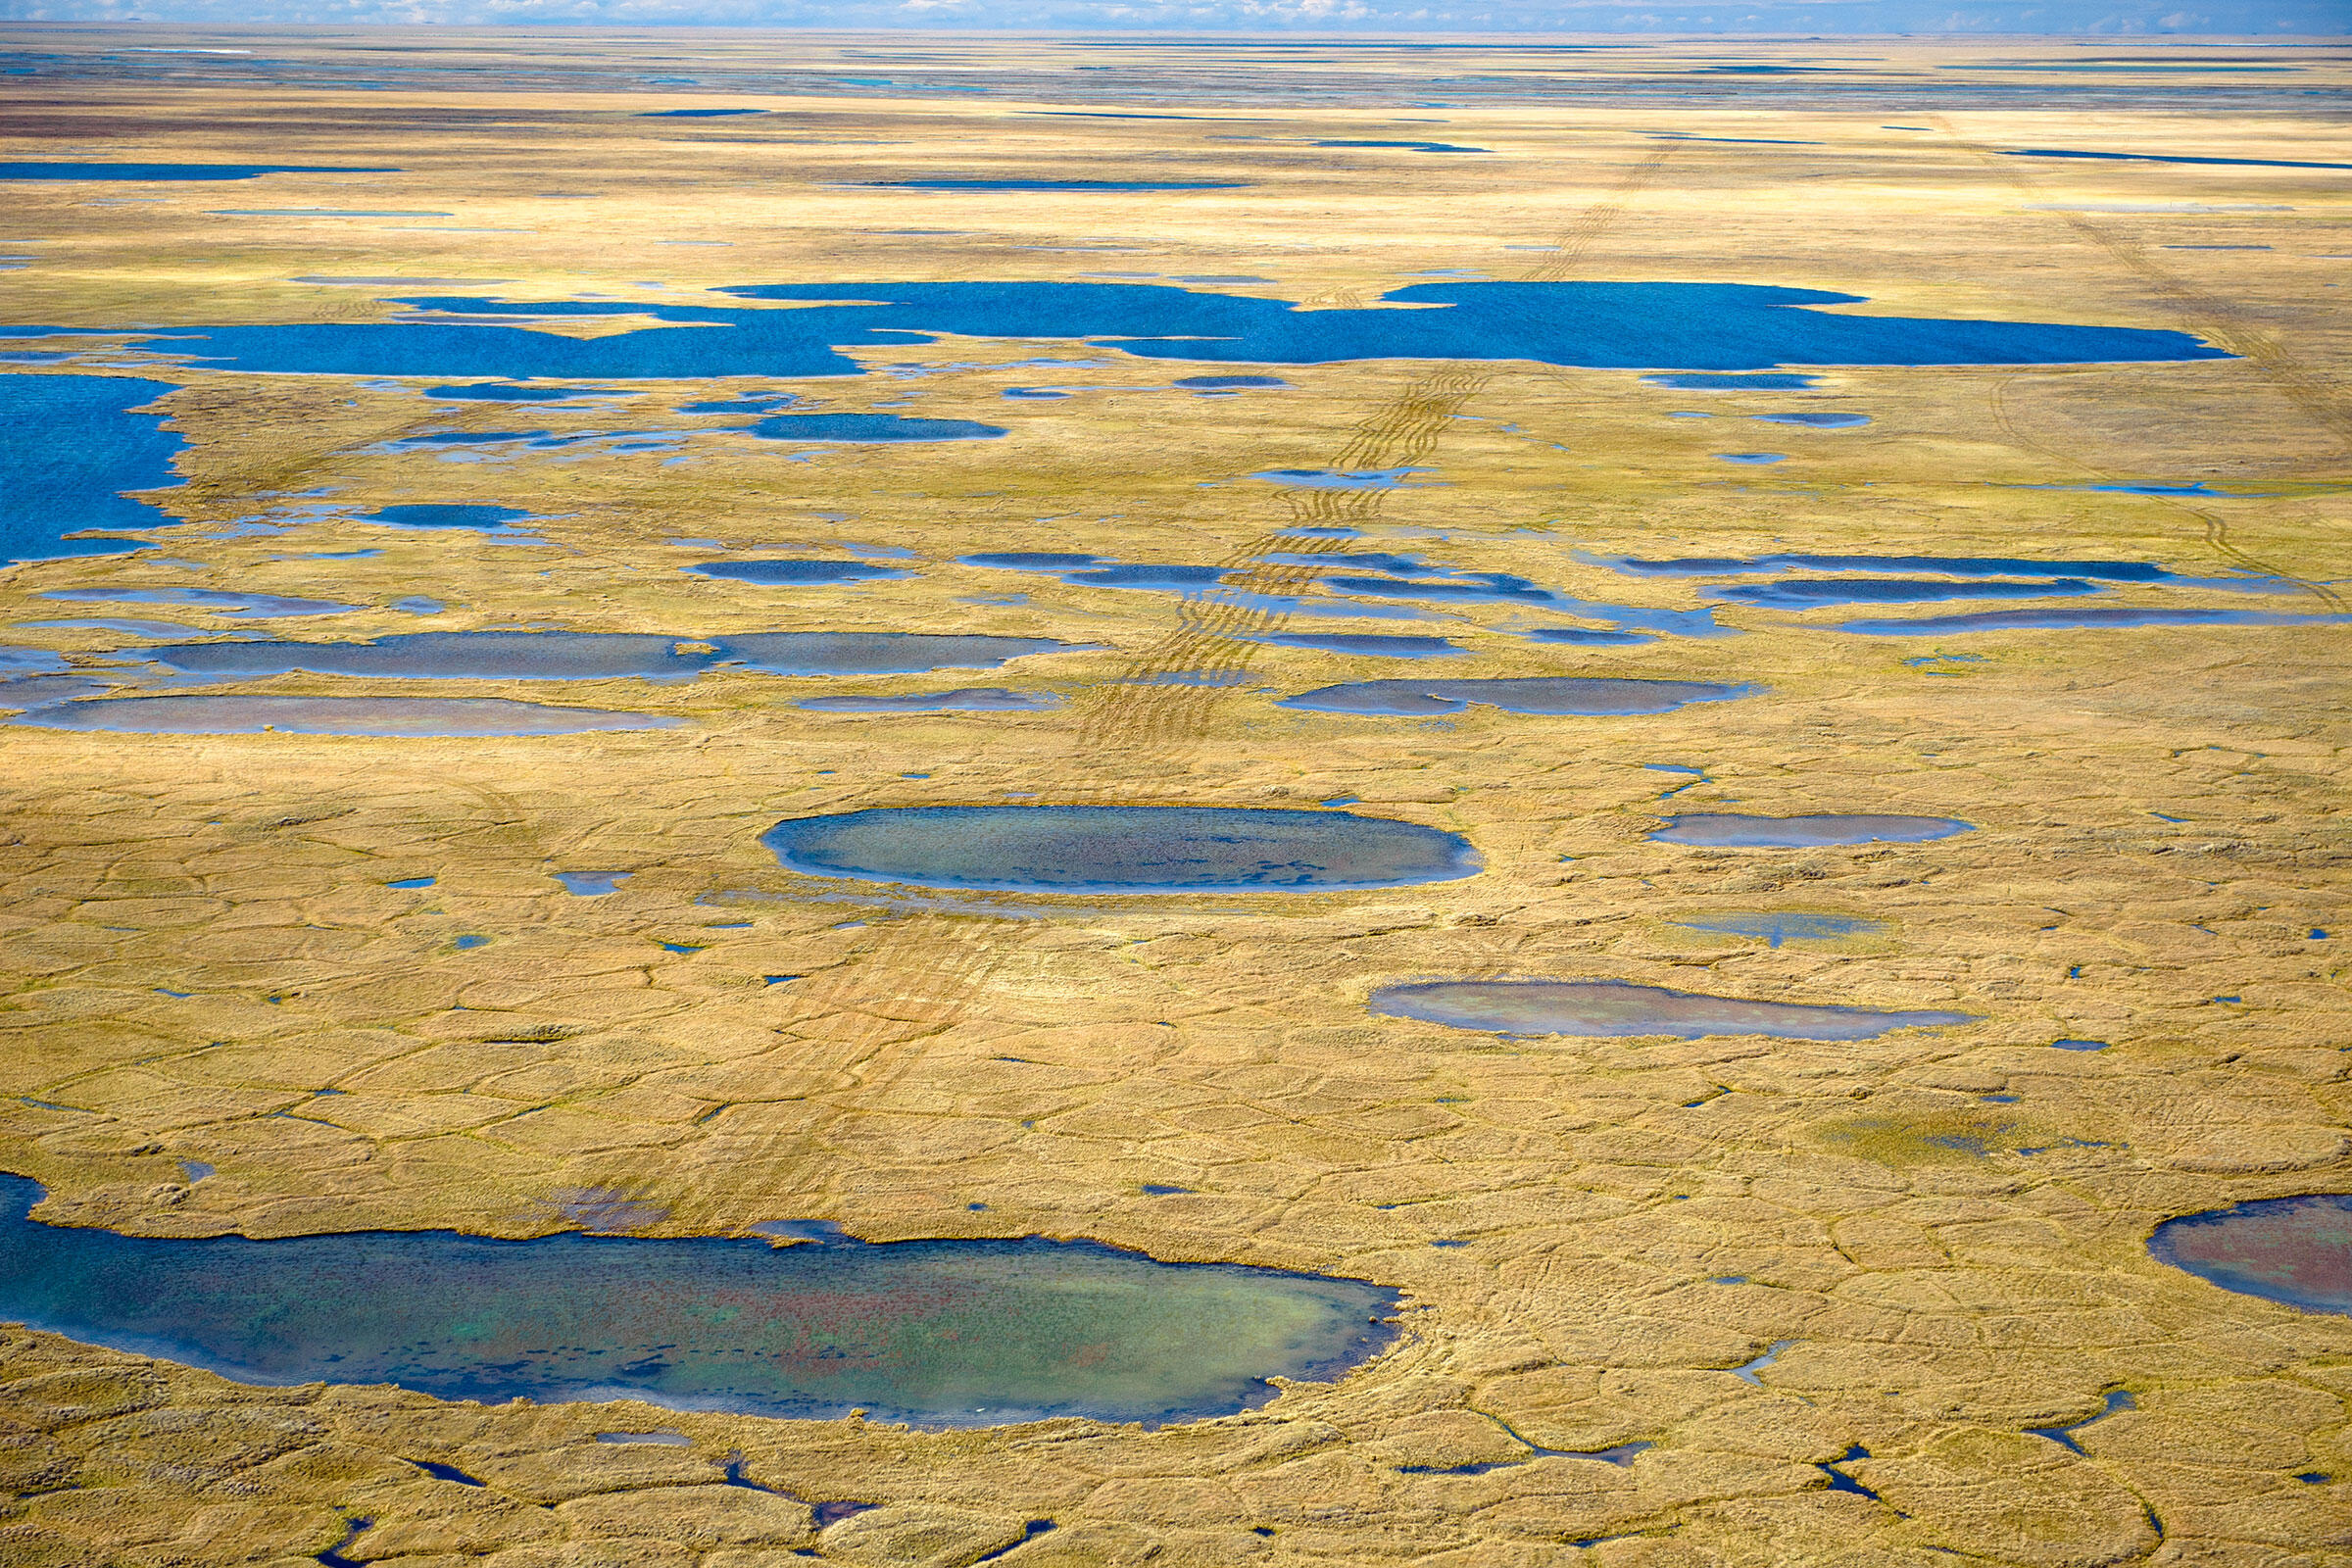 Scars from seismic testing left on the Alaskan tundra west of the Arctic National Wildlife Refuge. Florian Schulz